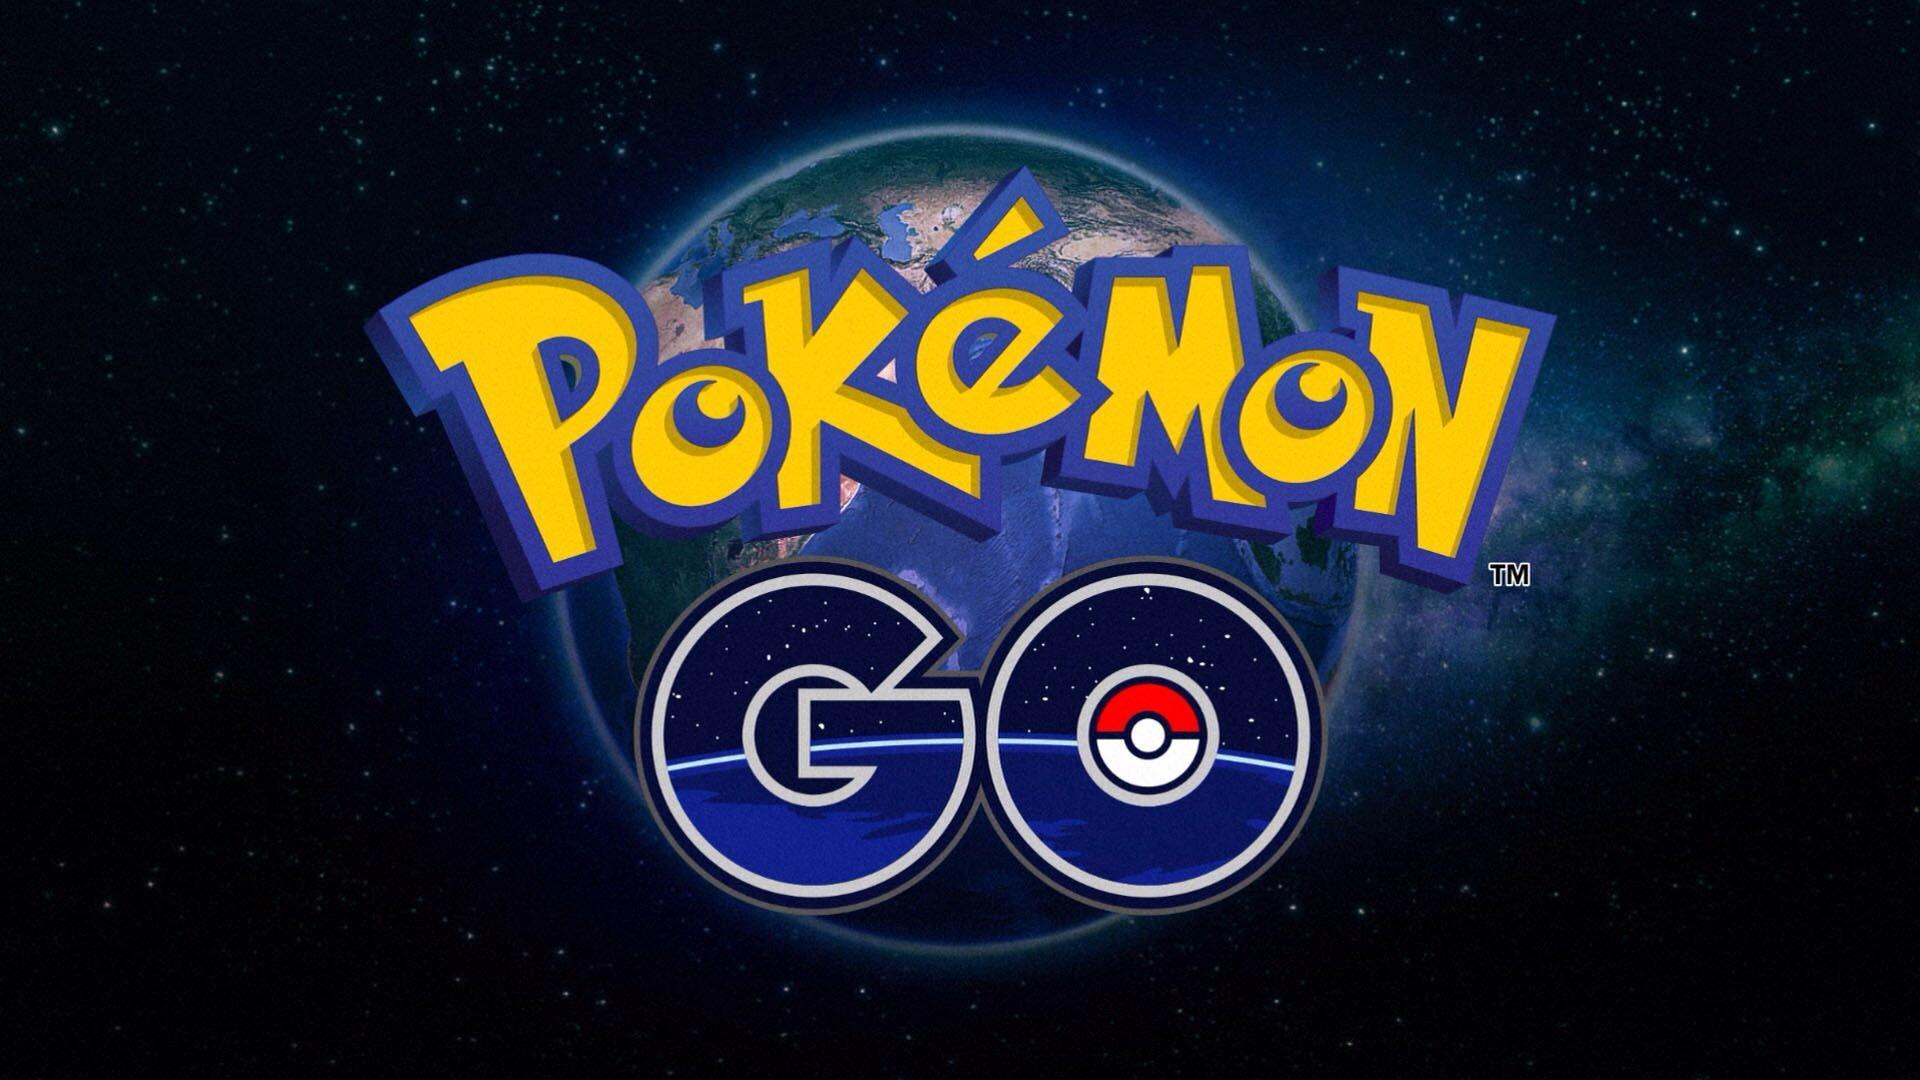 Are you ready for Pokemon Go?